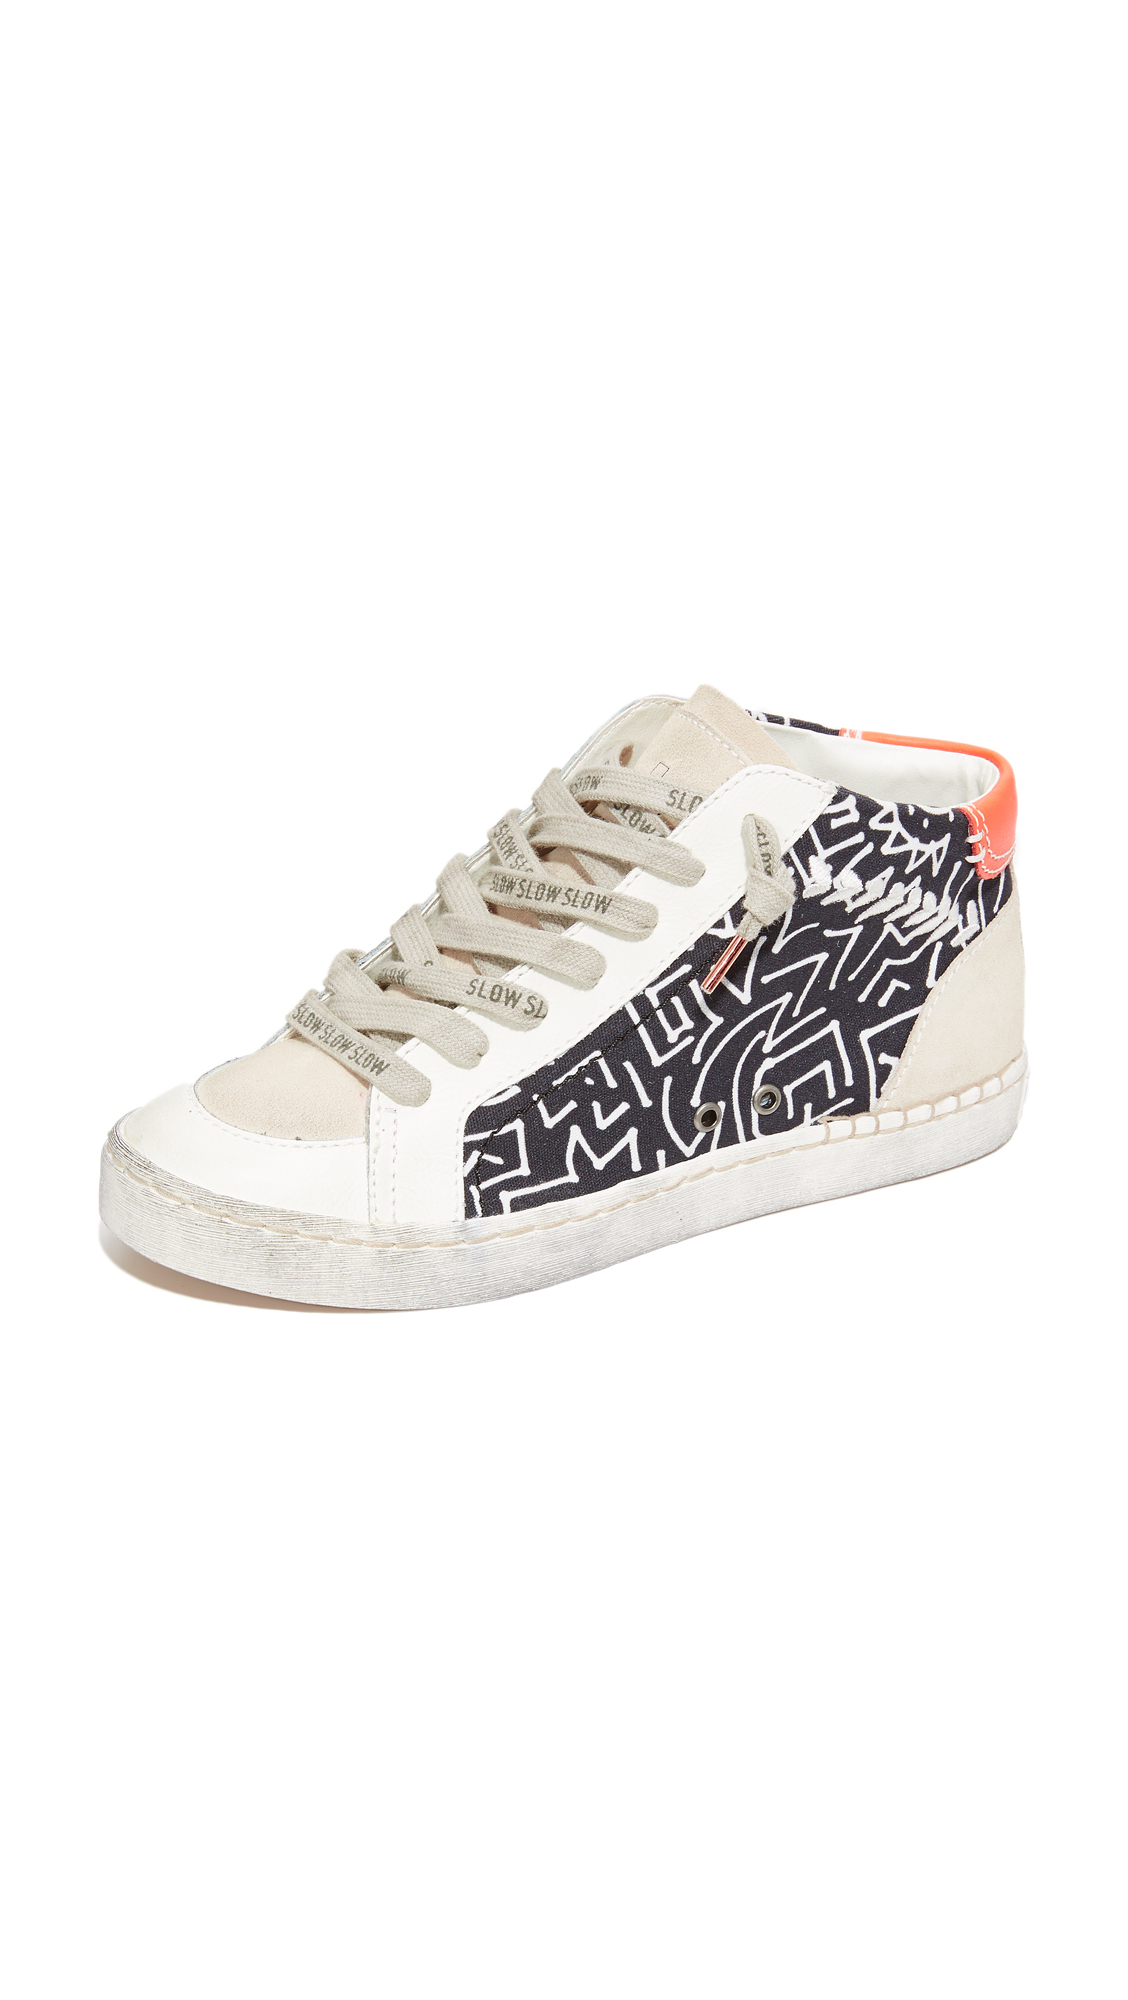 Dolce Vita Zane Special Collection High Top Sneakers - Black Multi at Shopbop